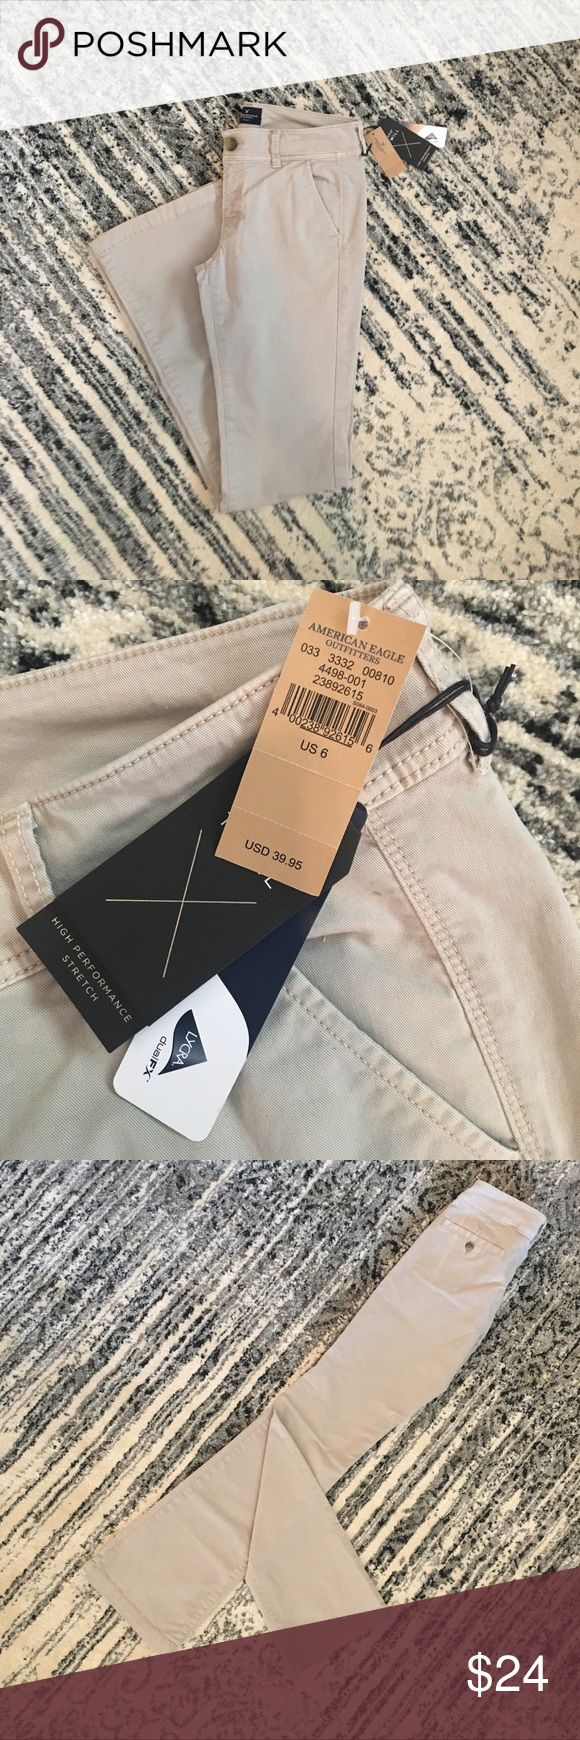 Kick Boot Khakis Needing to update your work wardrobe for half the price? These stretchy kick boot khakis are here to save the day! Perfect for wearing long hours and casual enough to dress up or dress down with! (Small stain on the front right leg, but very subtle!!) Size 6 Long American Eagle Outfitters Jeans Boot Cut